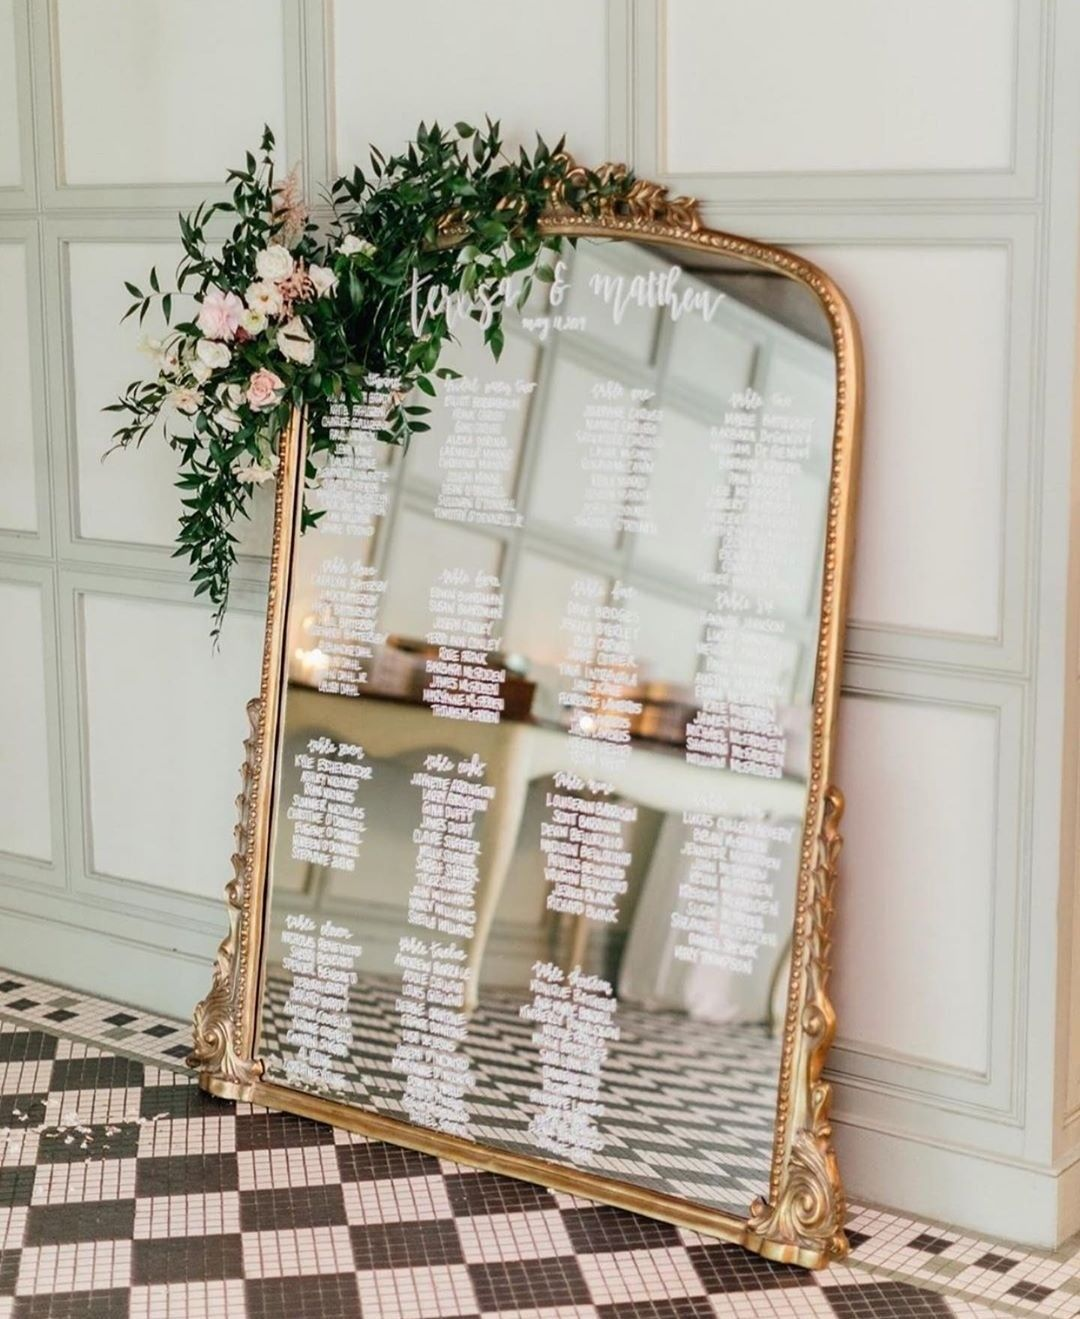 Vintage Wedding Seating Chart On A Mirror